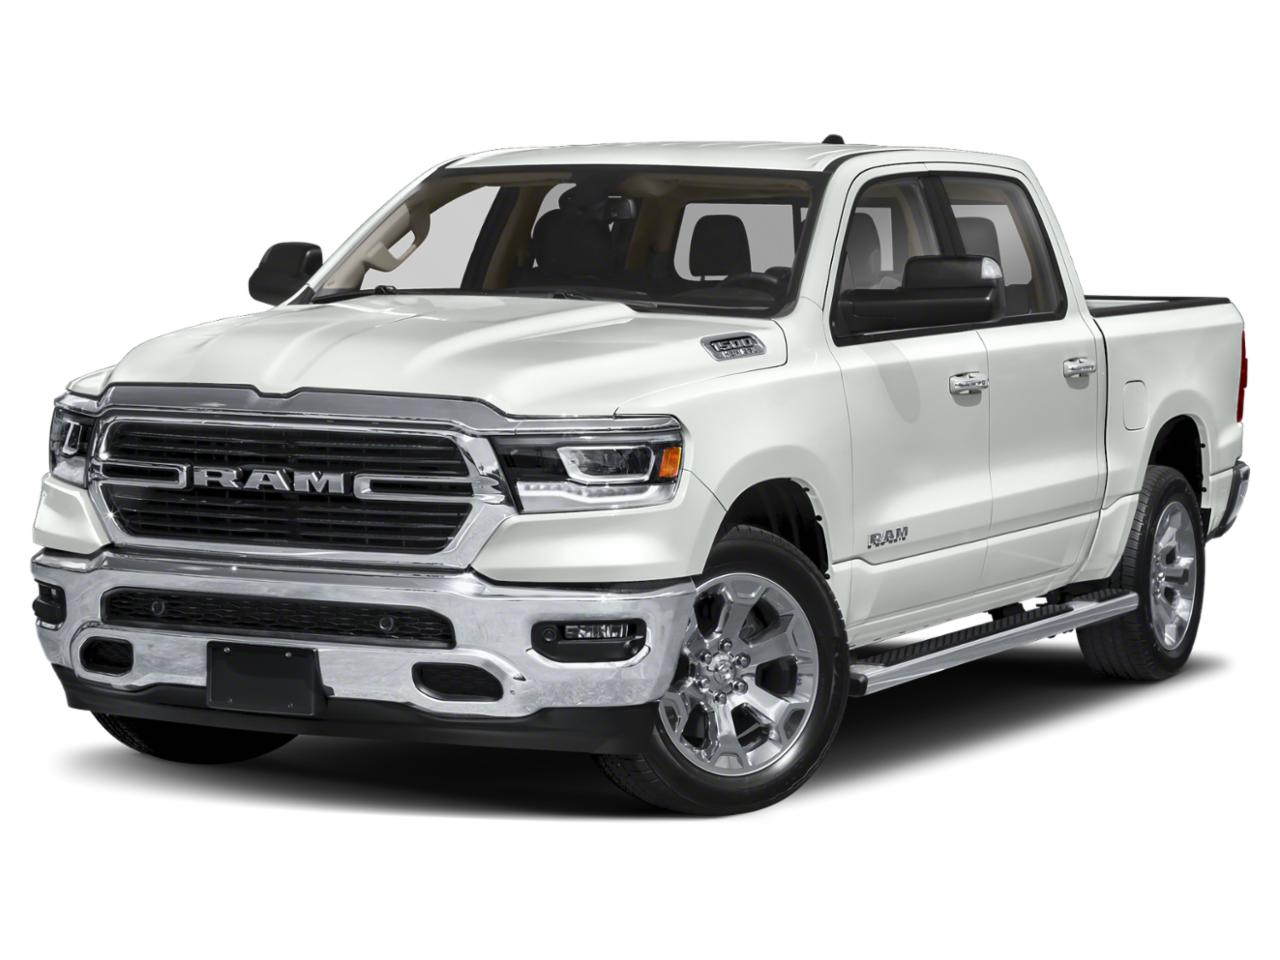 2019 Ram 1500 Vehicle Photo in Danbury, CT 06810